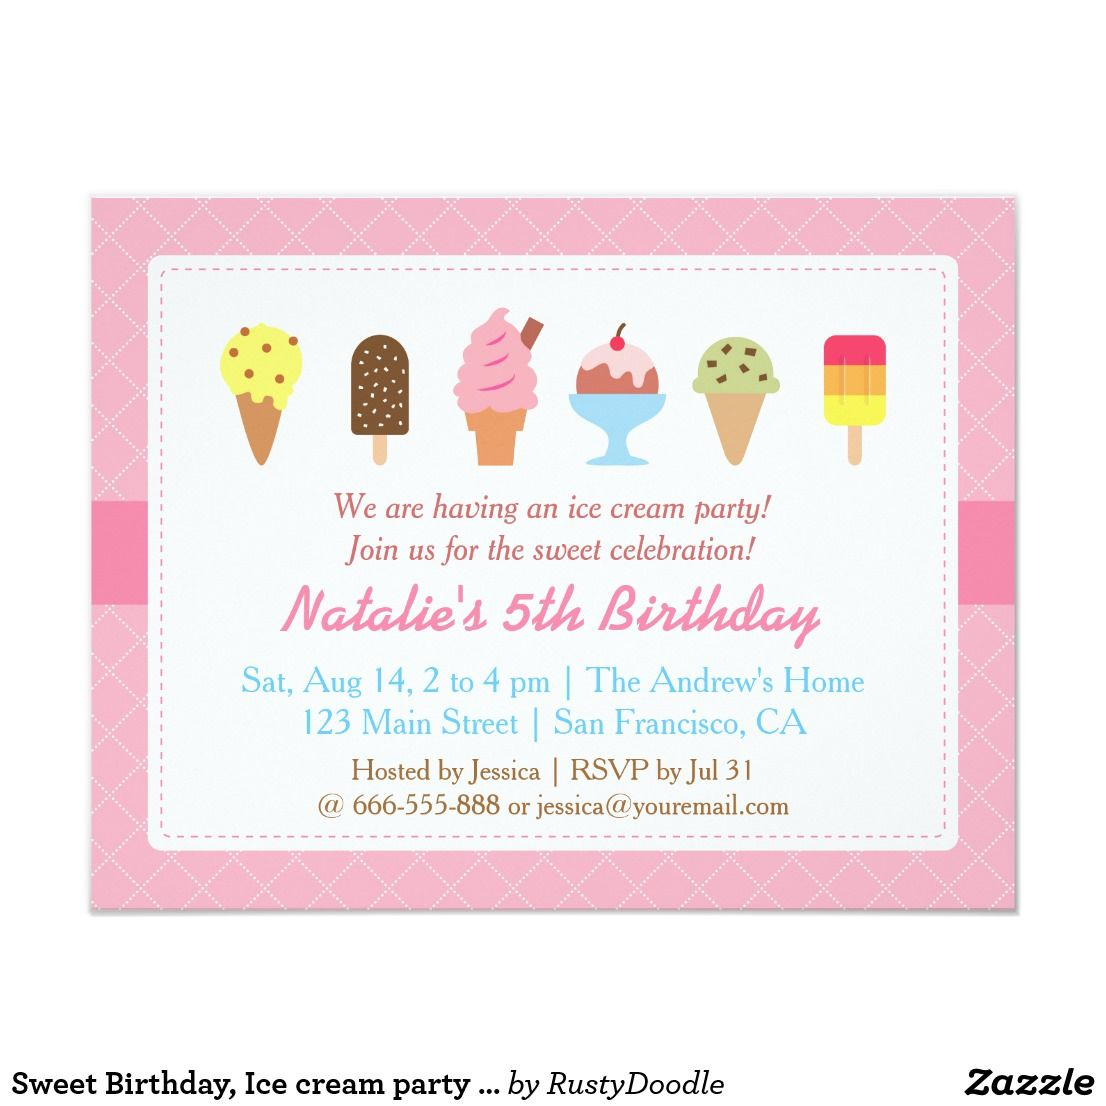 Sweet Birthday, Ice cream party invitations   Party invitations and ...